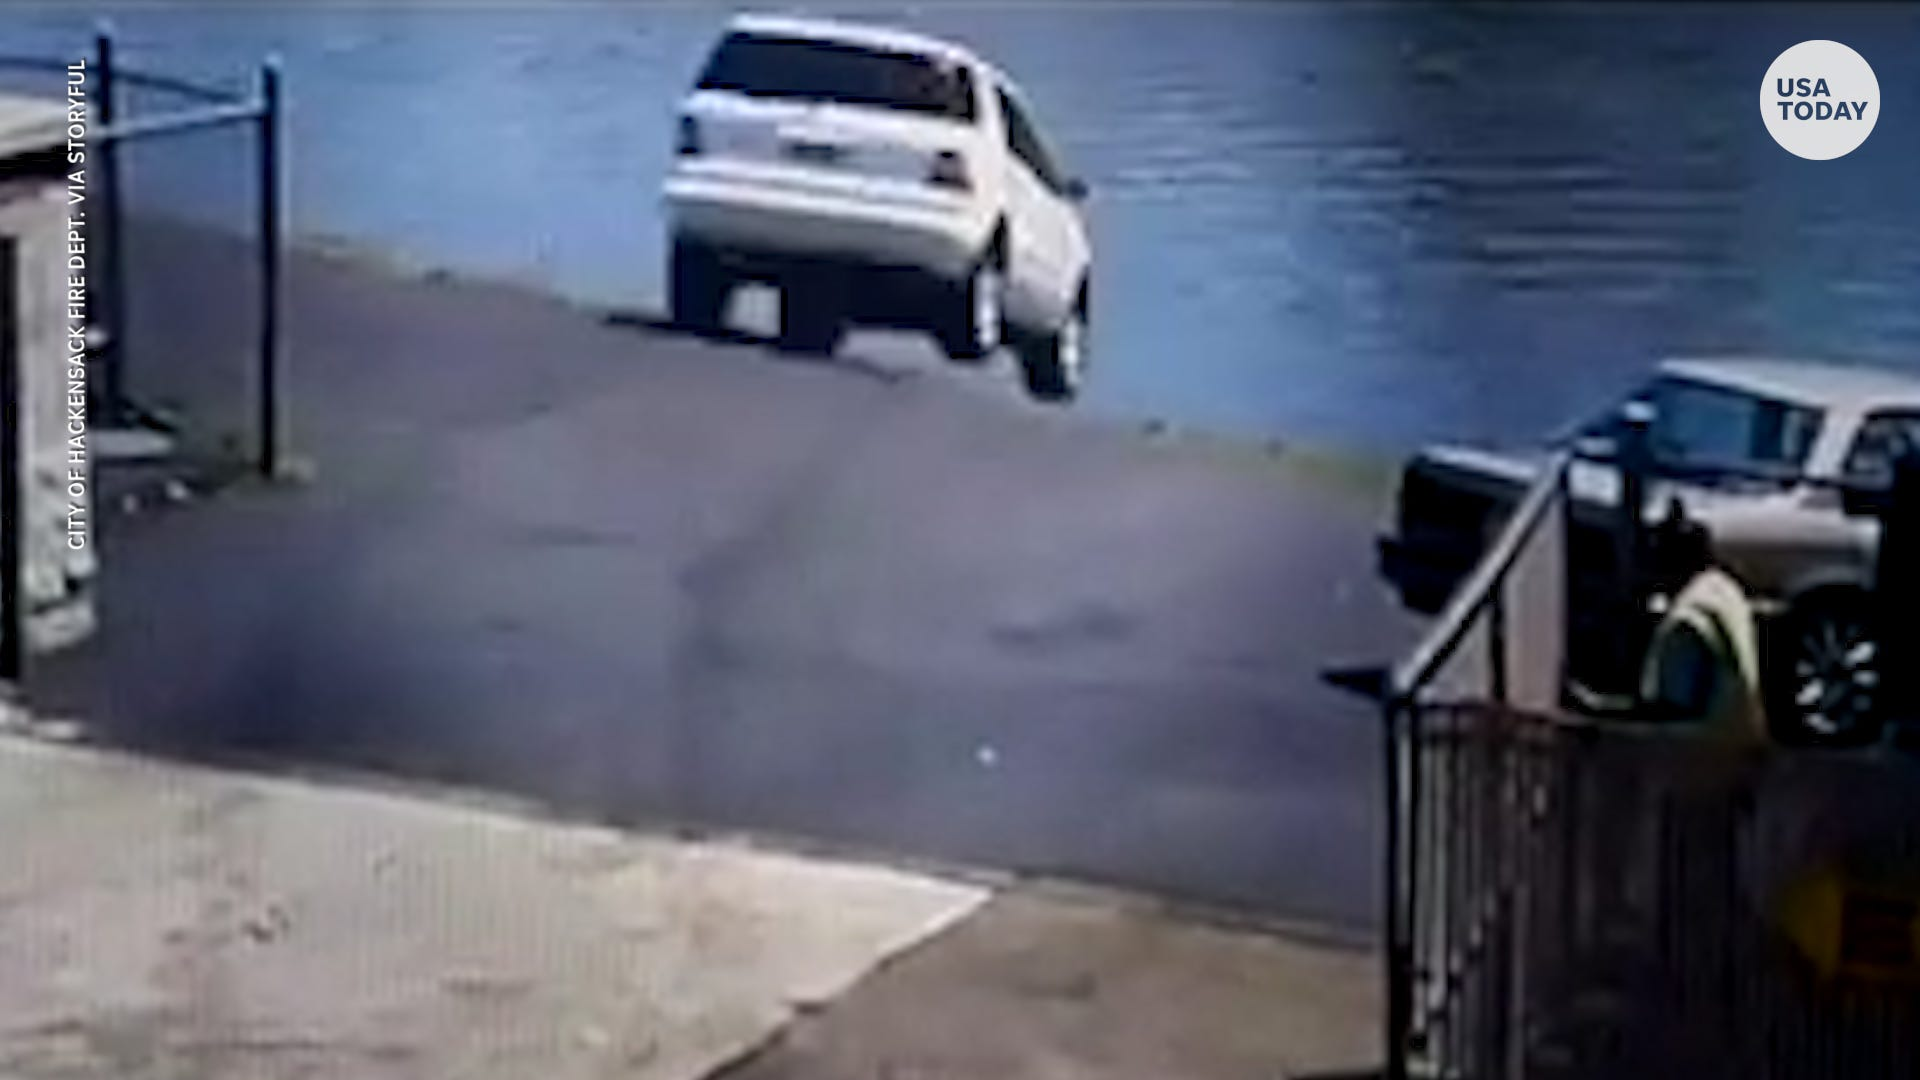 SUV exits car wash, plunges into river